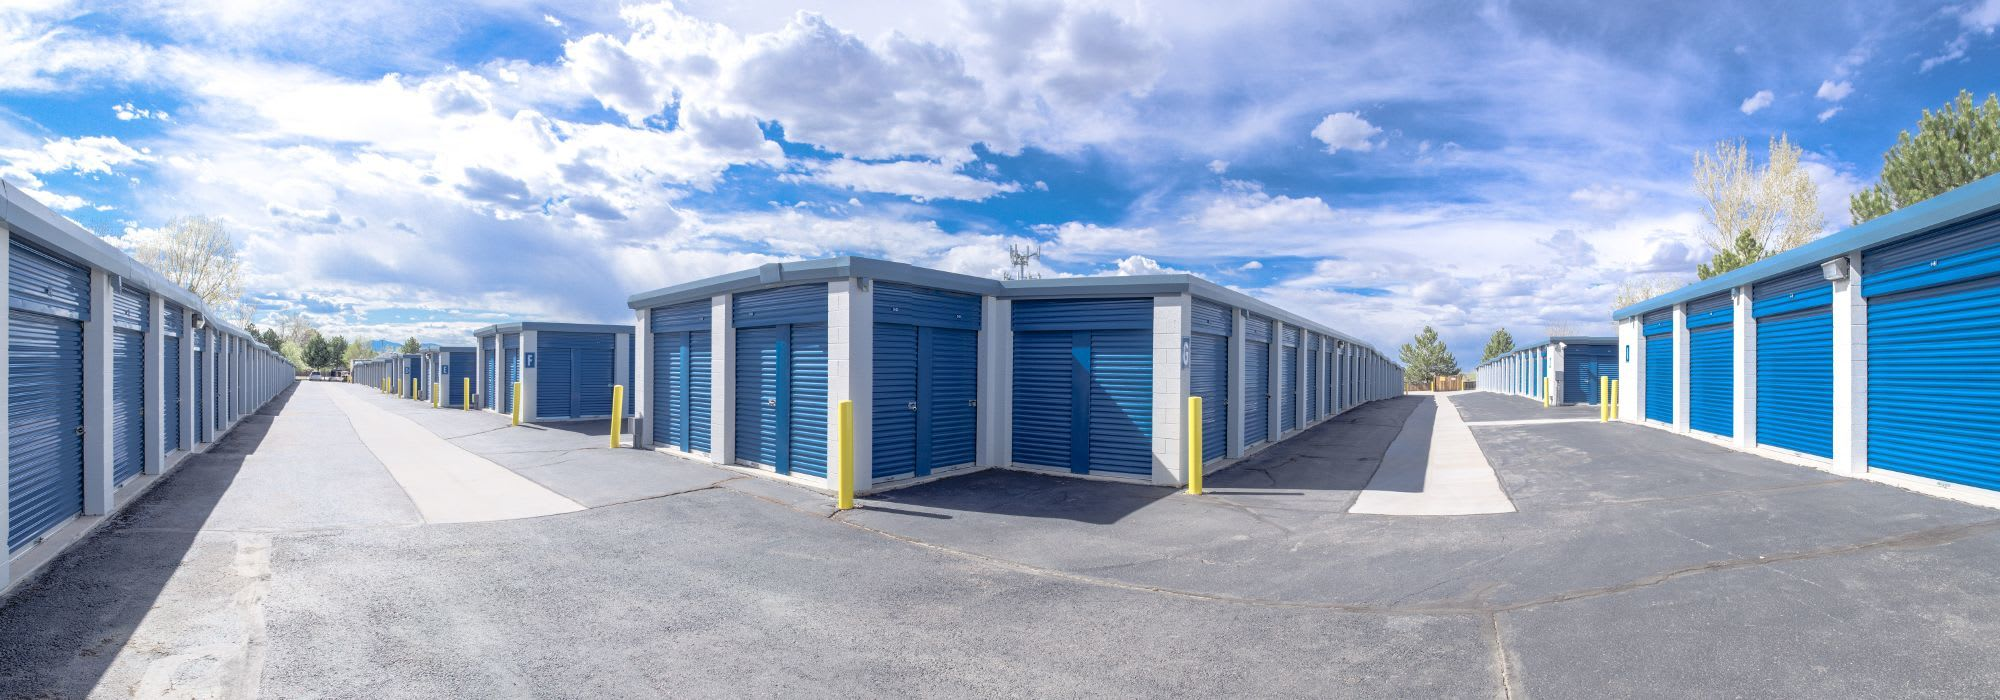 Self storage in Aurora CO